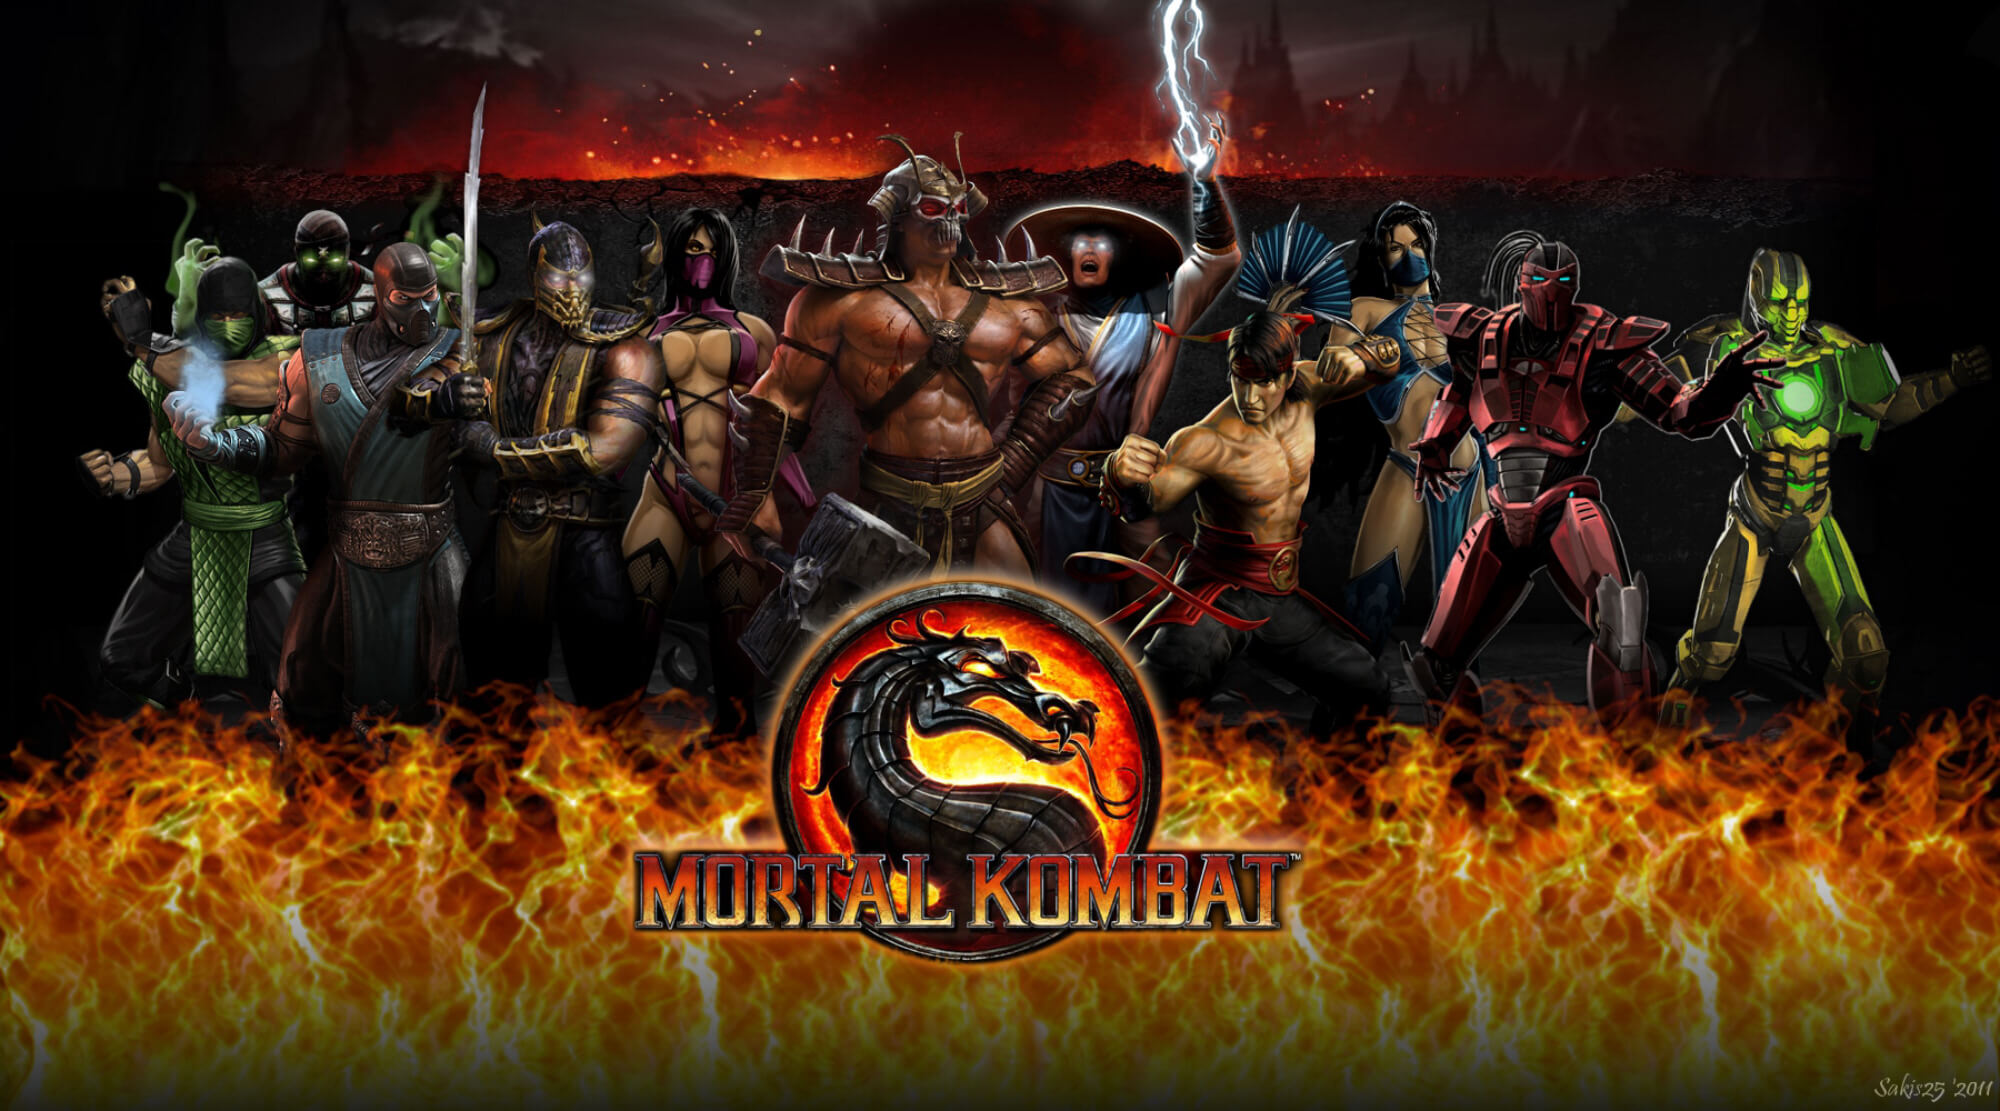 Mortal Kombat 2011 Game Guide: How to Unlock Characters, Costumes